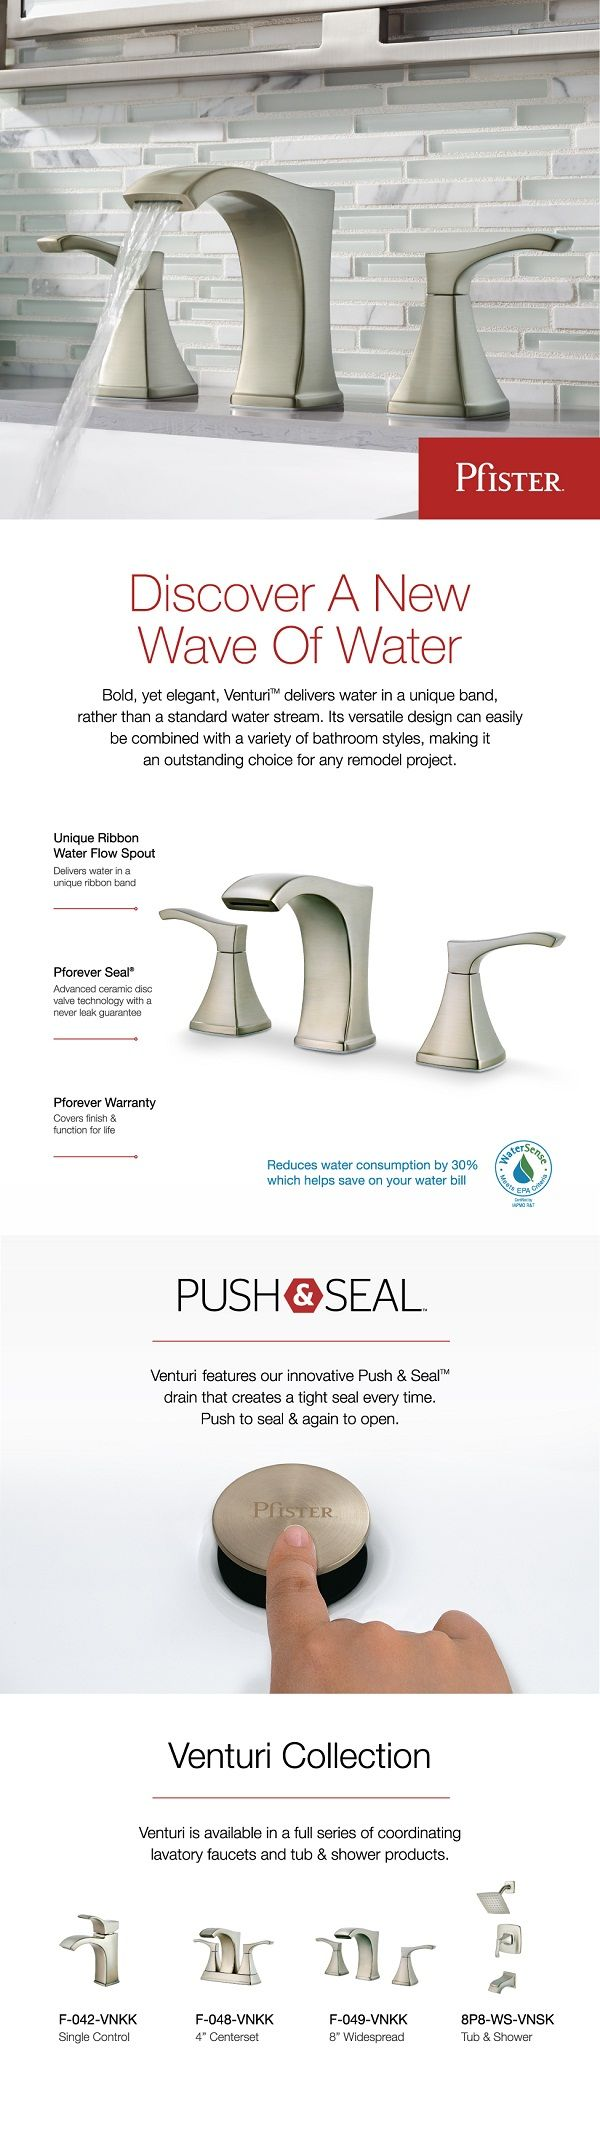 White bathroom faucet - Widespread 2 Handle Bathroom Faucet In Brushed Nickel